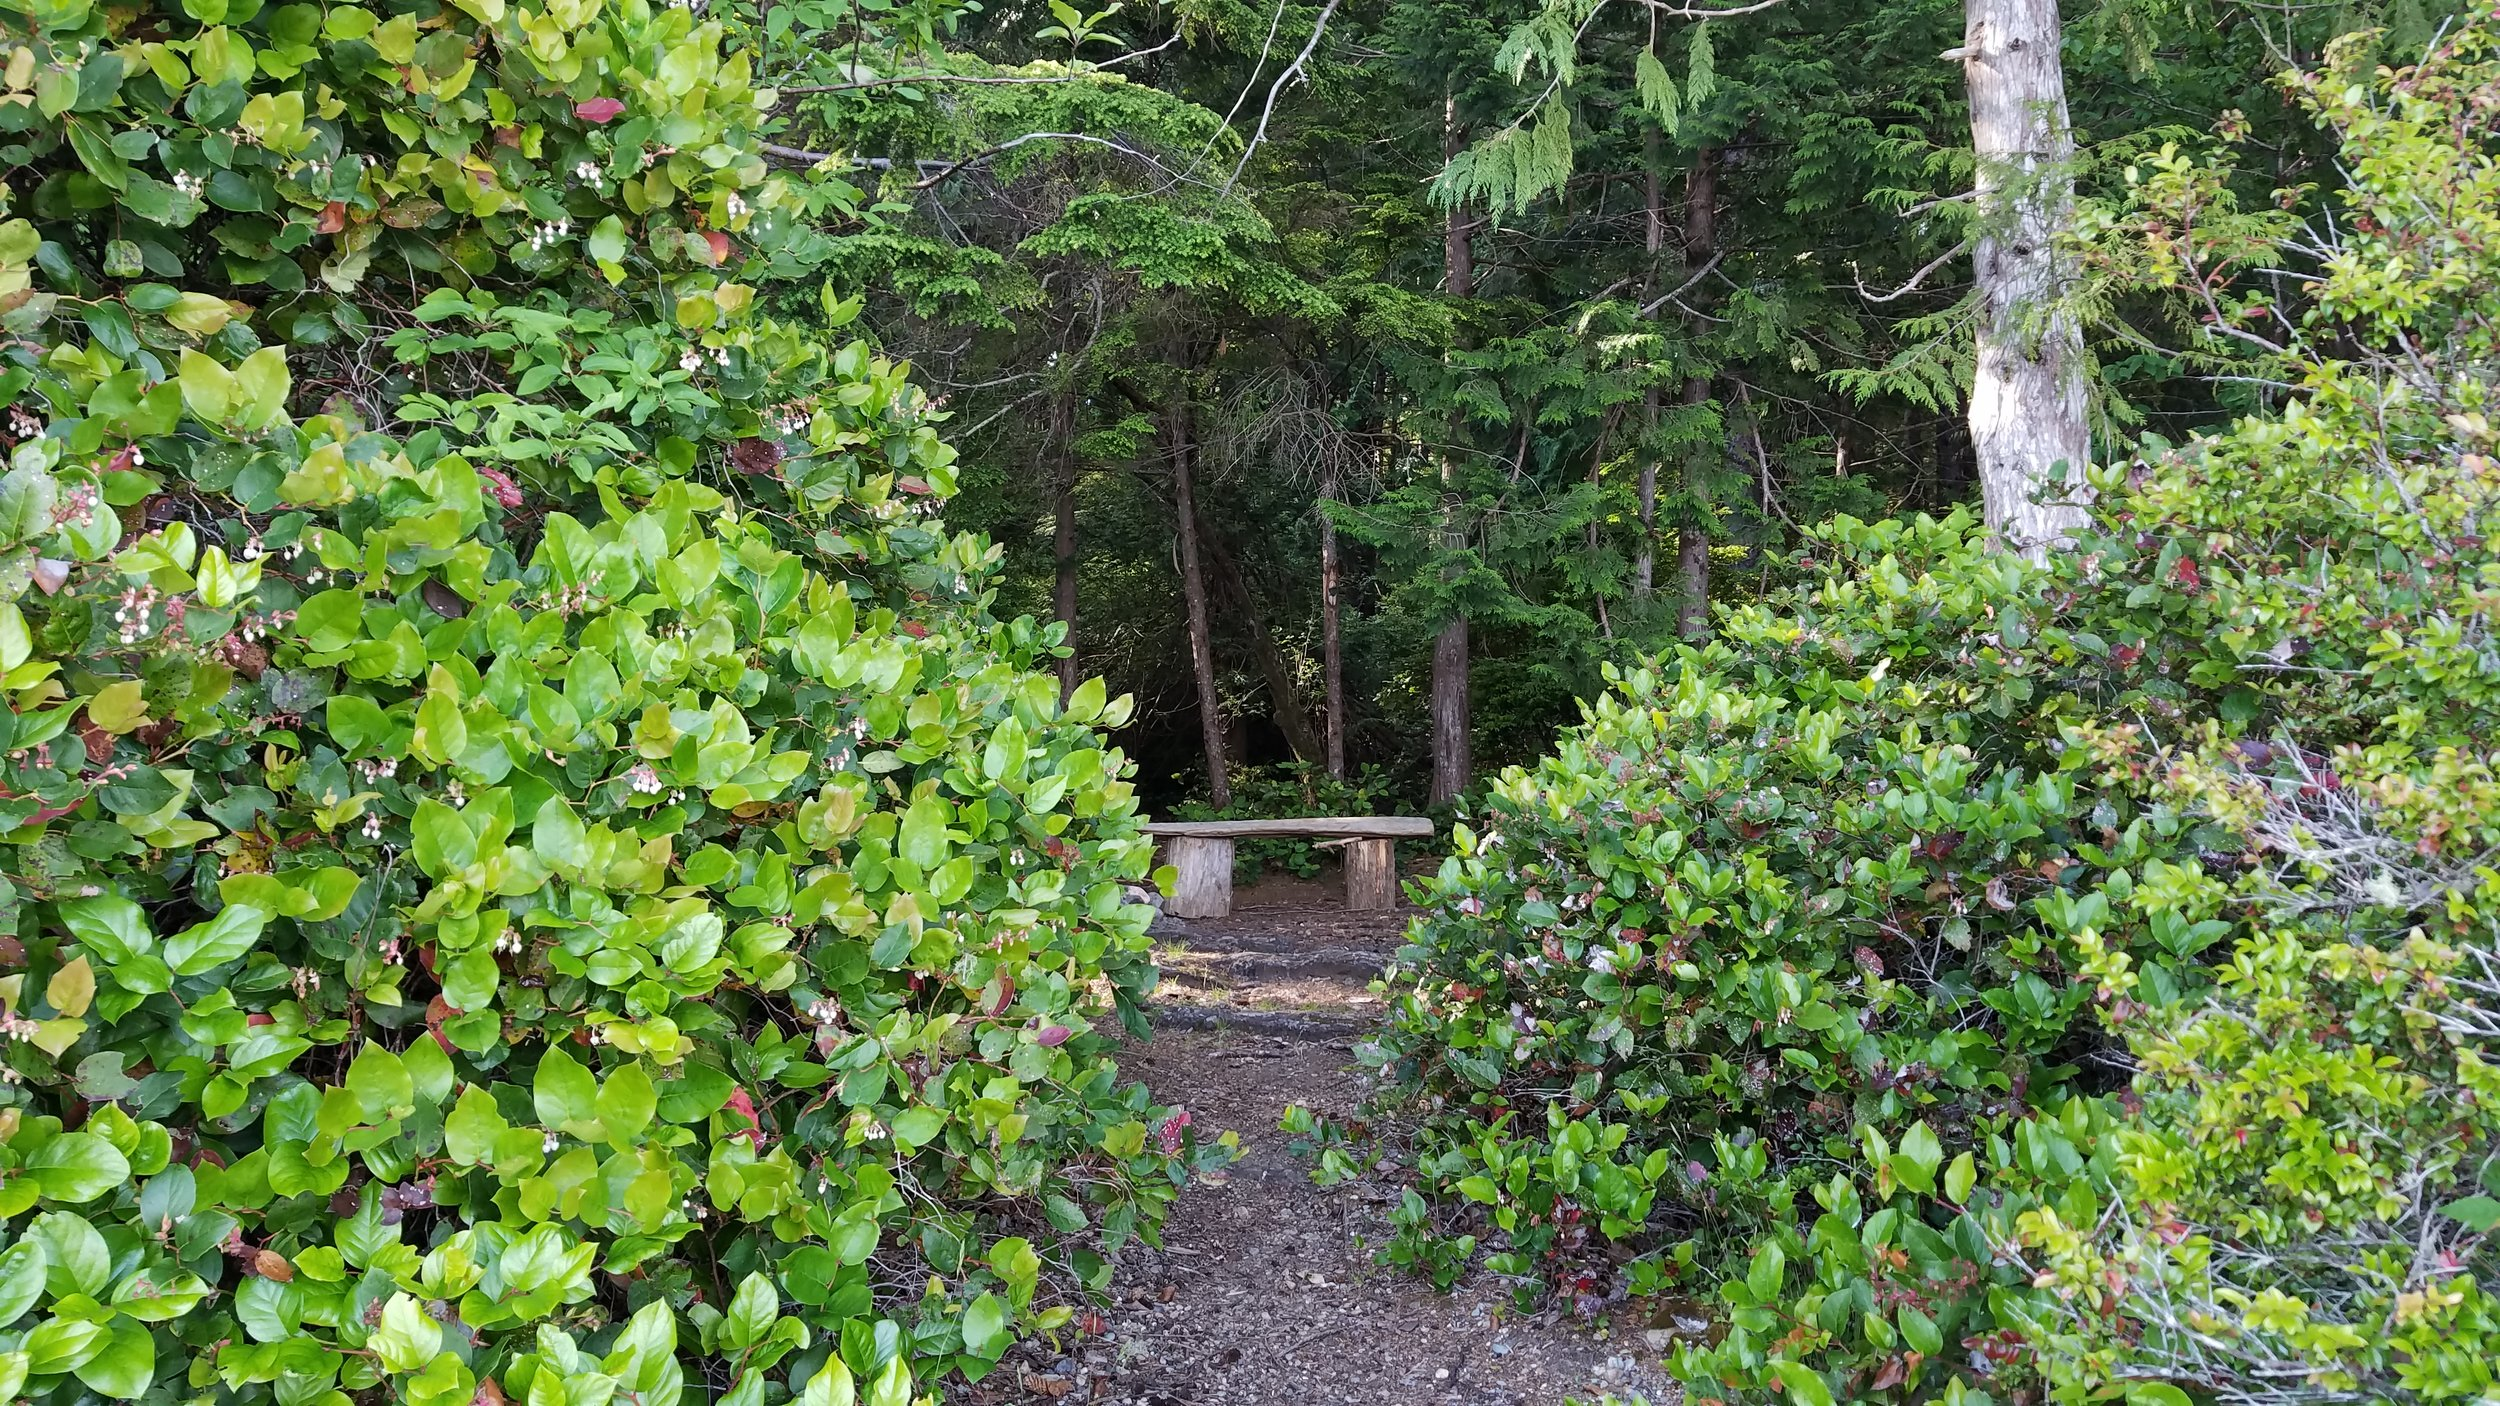 The only sign that you've arrived at the entrance to the primitive campground at Erickson's Bay on Lake Ozette is this alluring driftwood bench. Photo by MM Ruth.